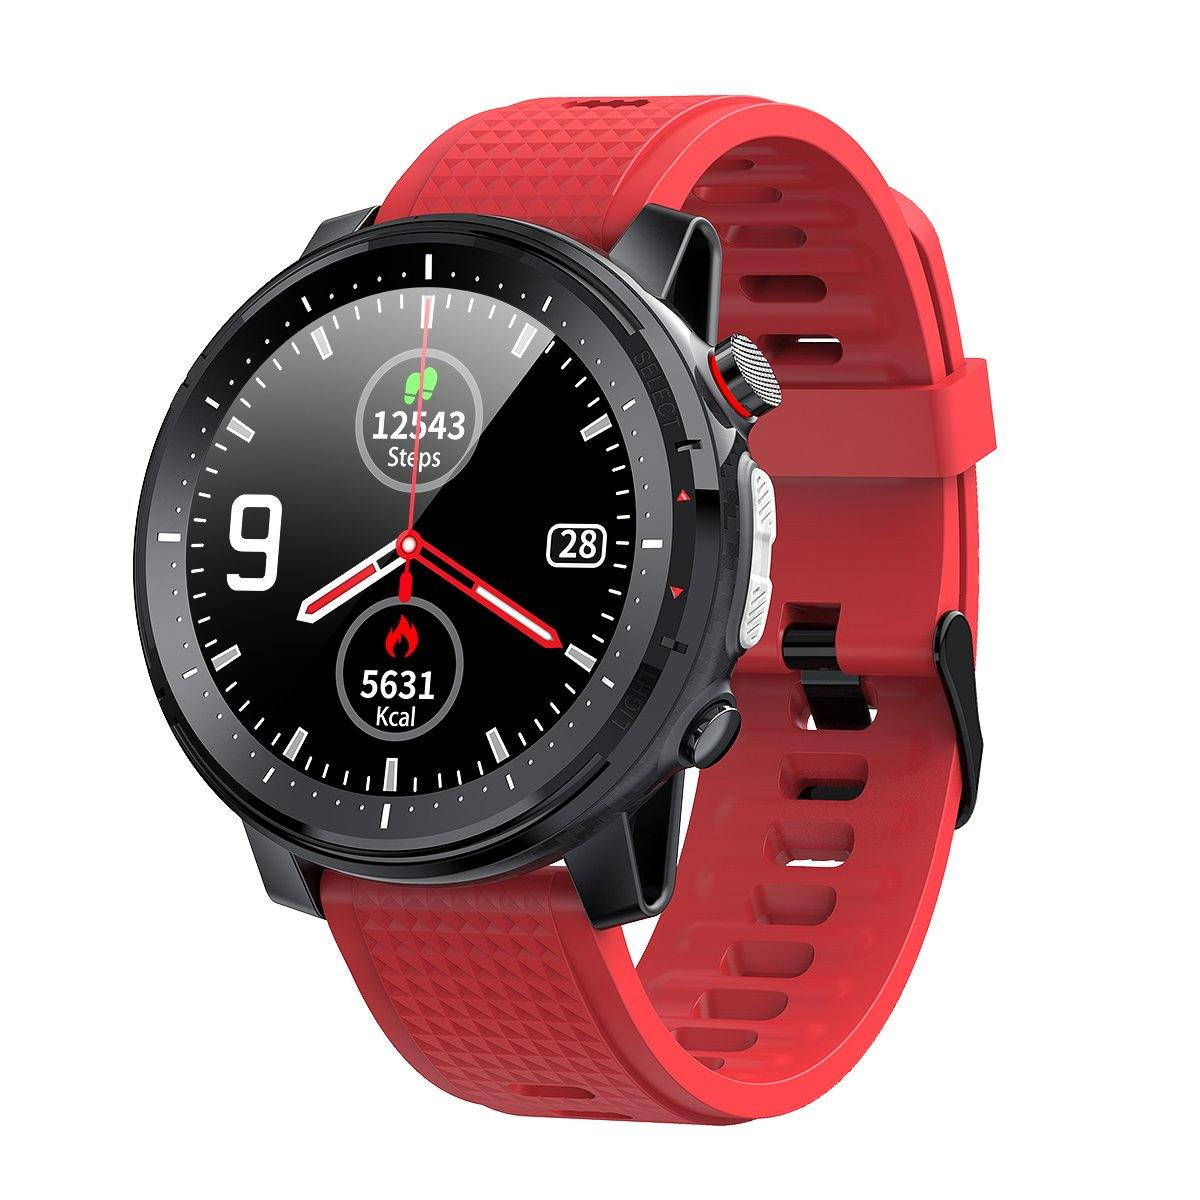 Microwear L15 Fitness/Smartwatch - Red